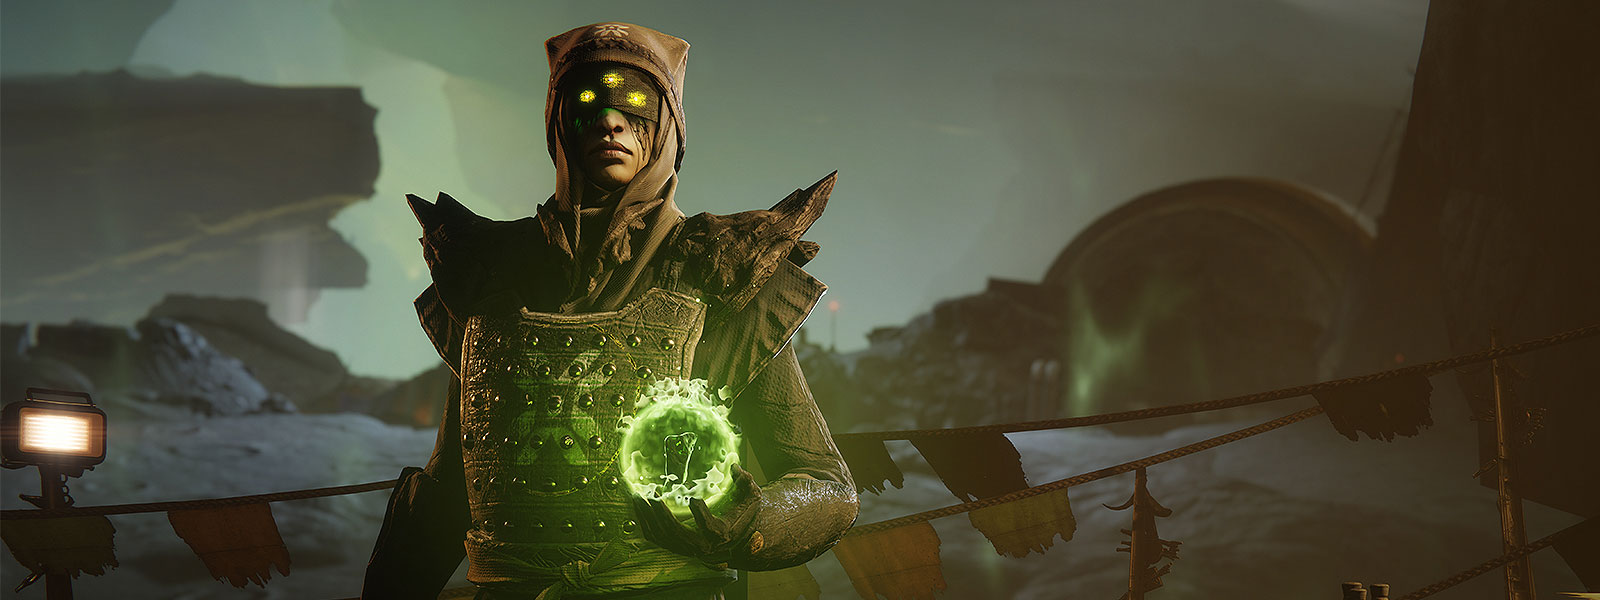 Character Eris holding a green orb